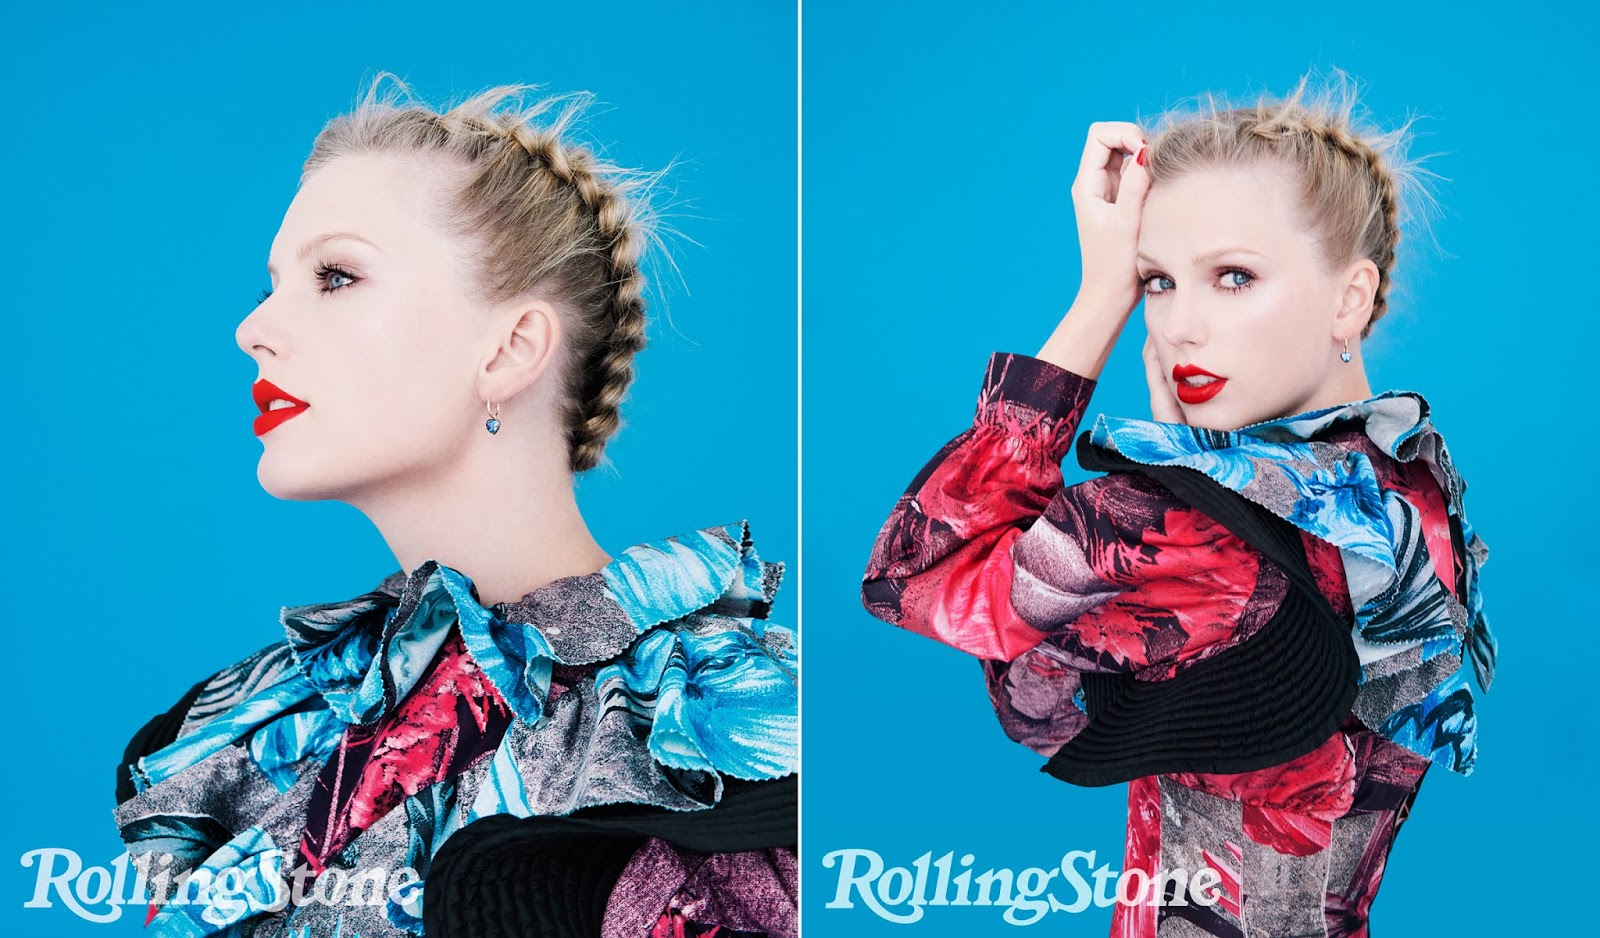 Photograph by by Erik Madigan Heck for Rolling Stone. Dress by Louis Vuitton. Earrings by Jessica McCormack